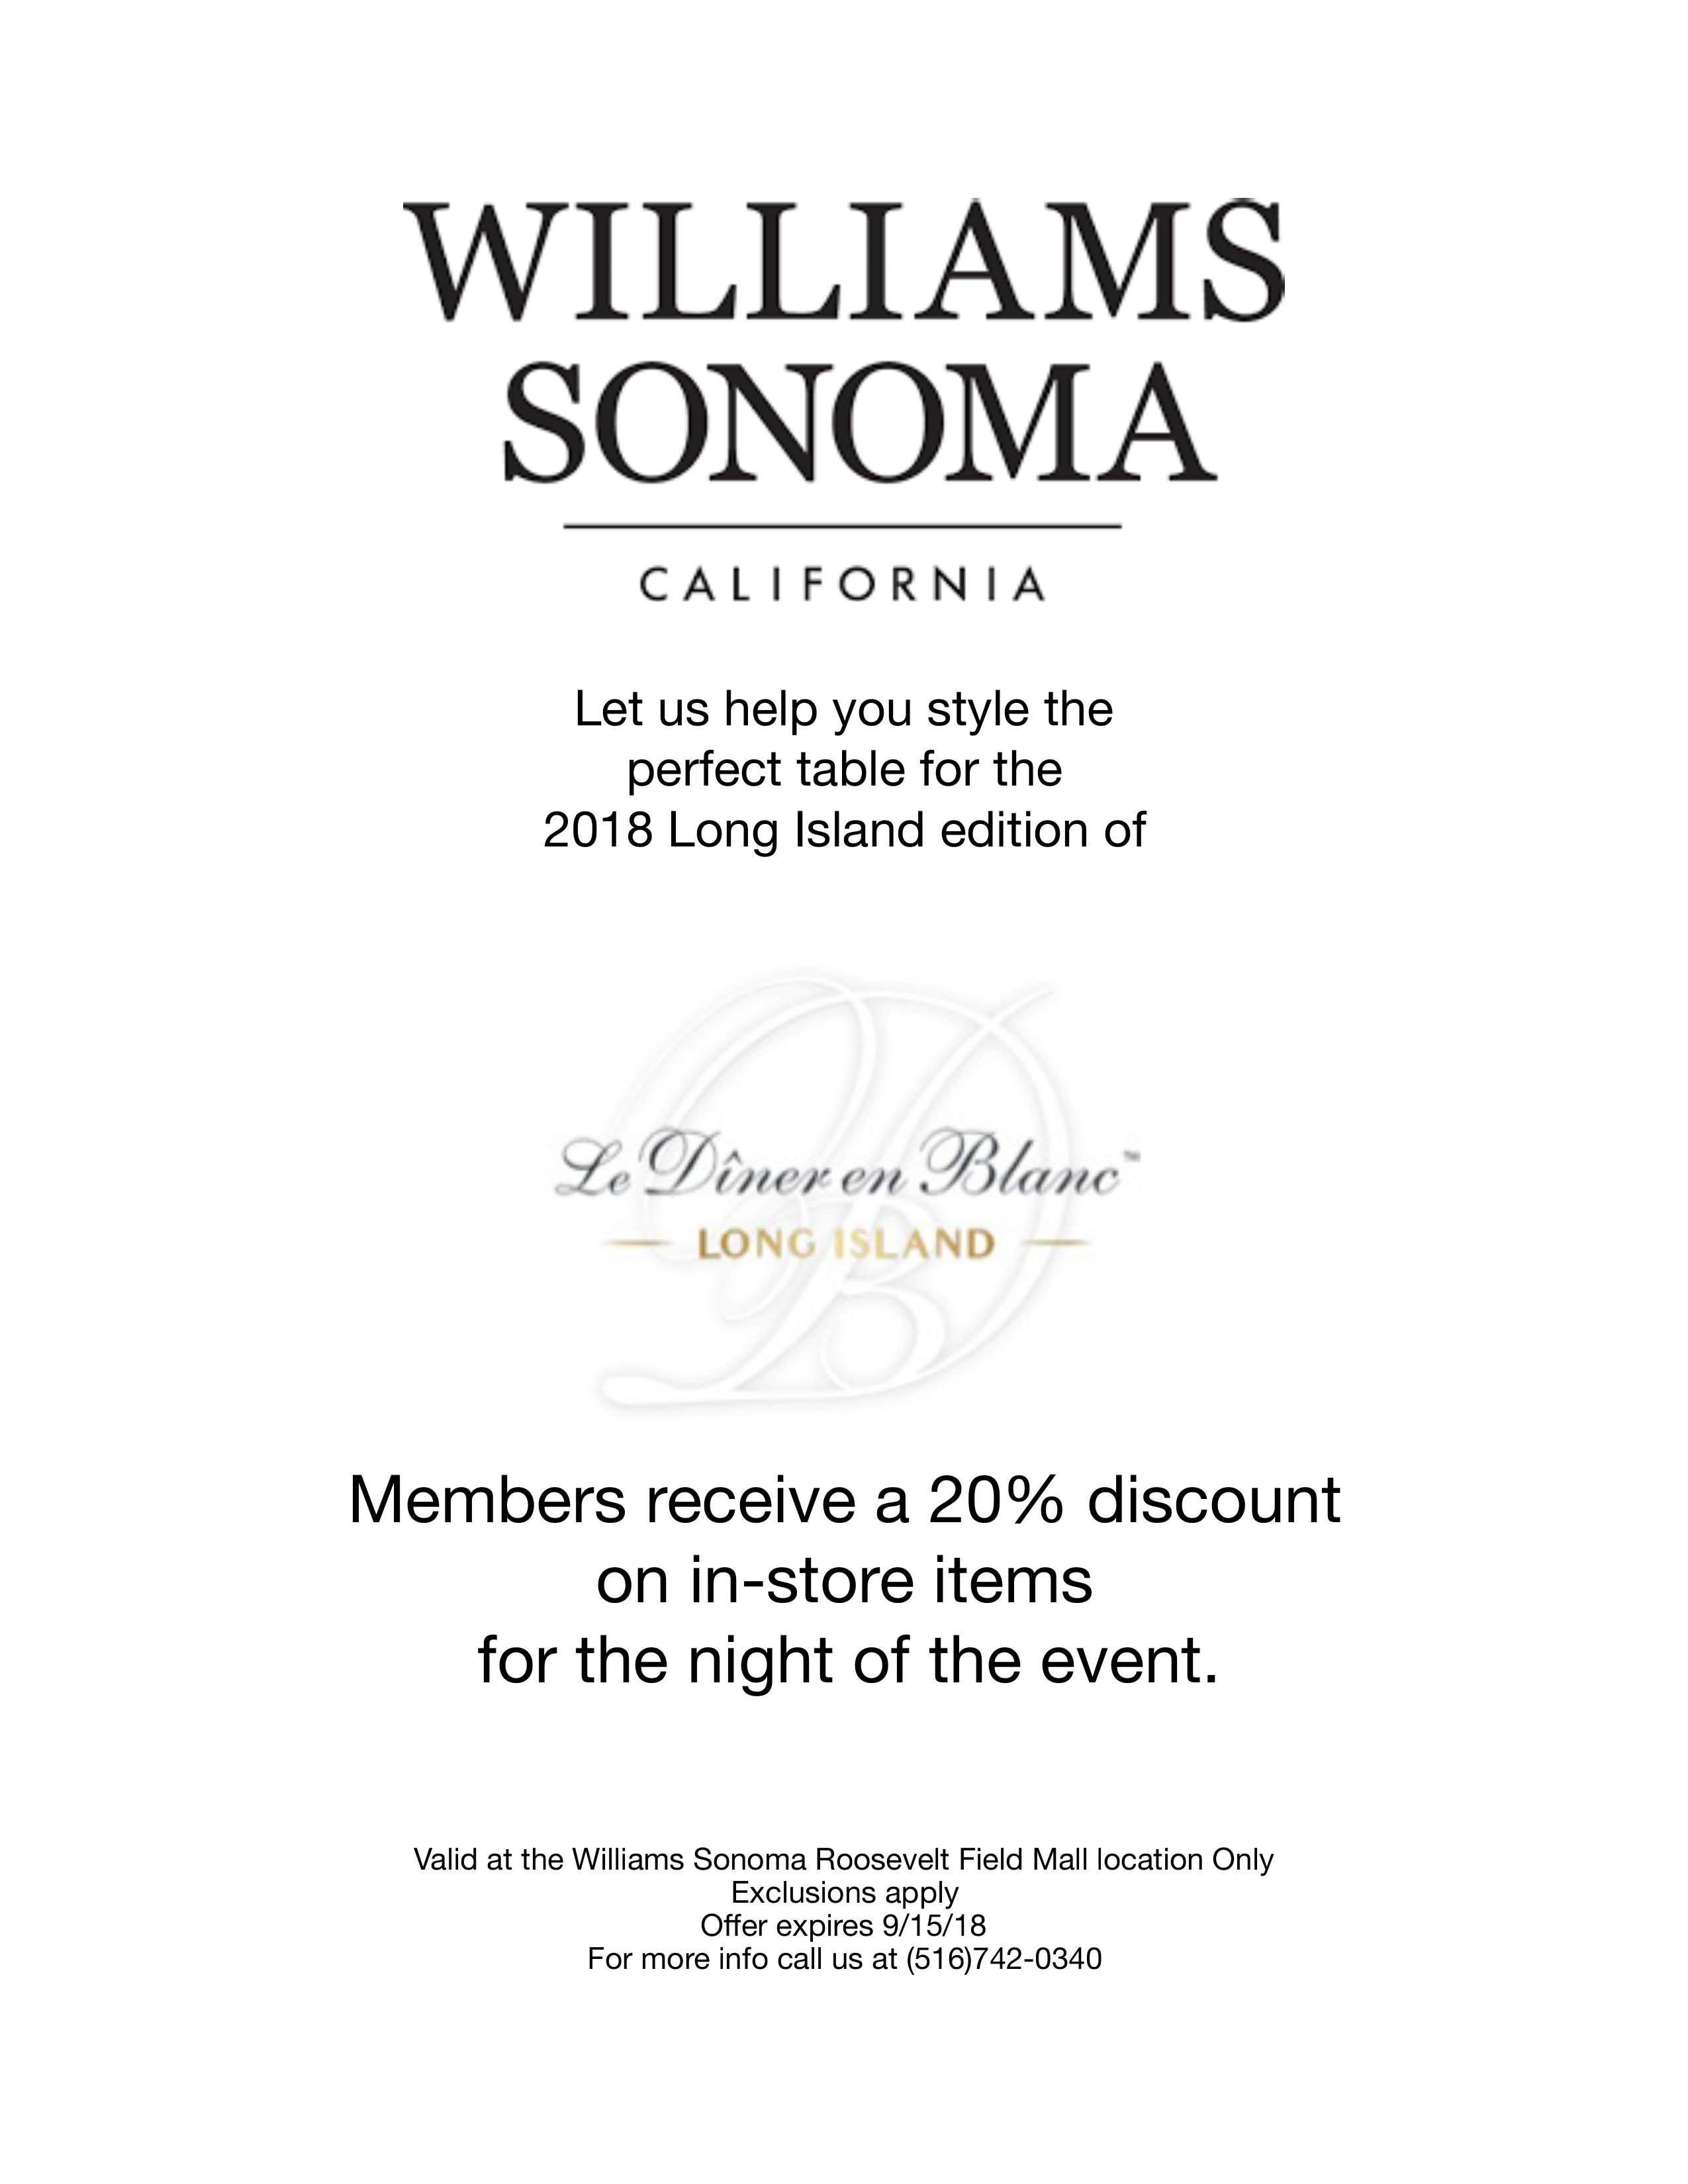 Please Print The Offer And Bring It To Williams Sonoma Roosevelt Field When Your Are Making Purchase Or Have Readily Accessible On Their Phone